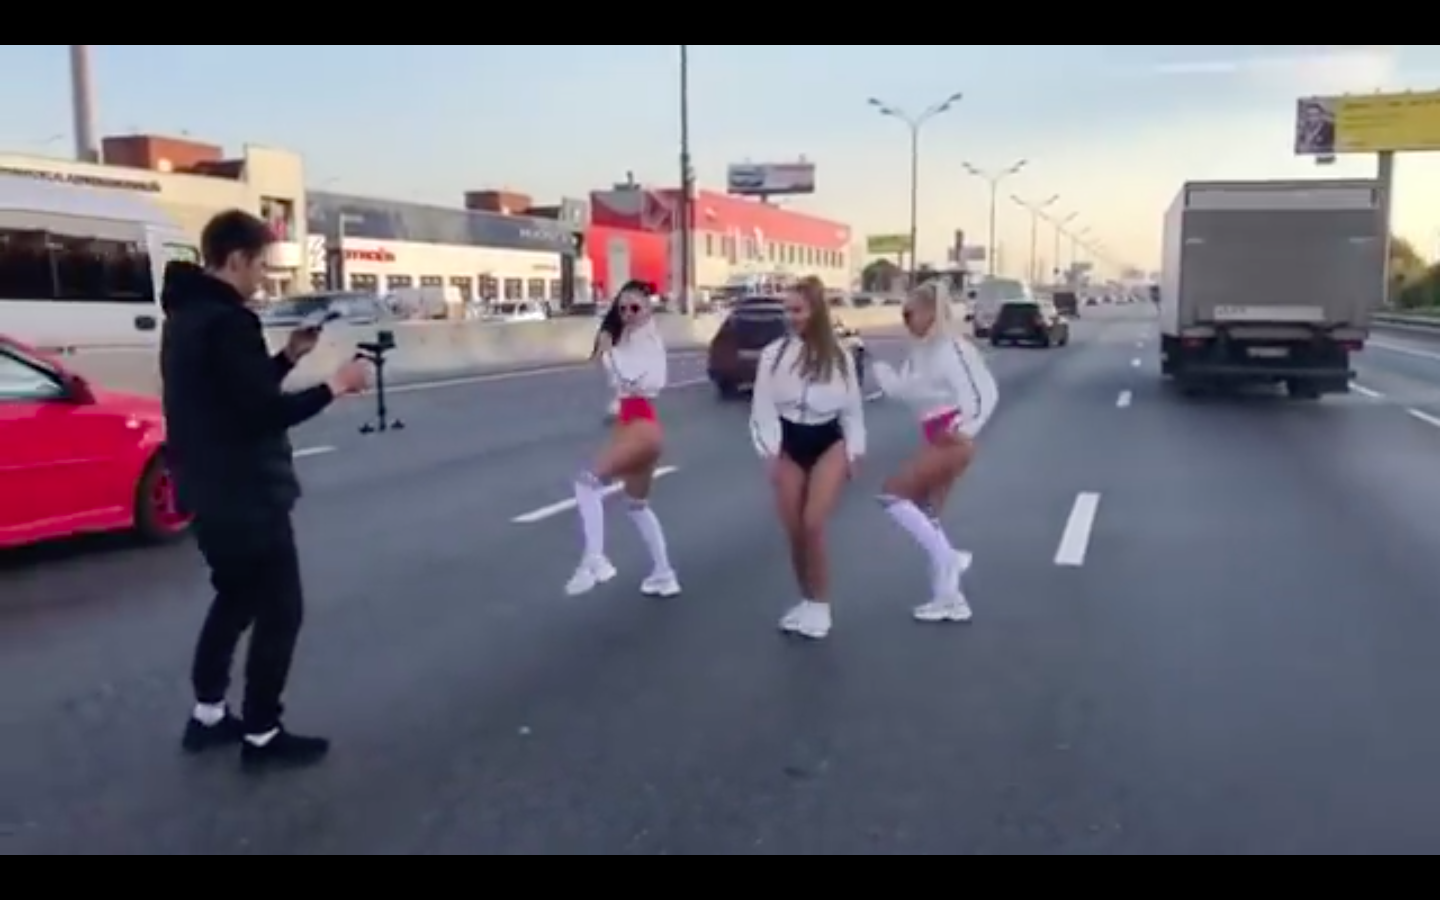 Video: Only In Russia...Wife Of Regional Deputy Creates Traffic Jam On Expressway To Twerk...No Really